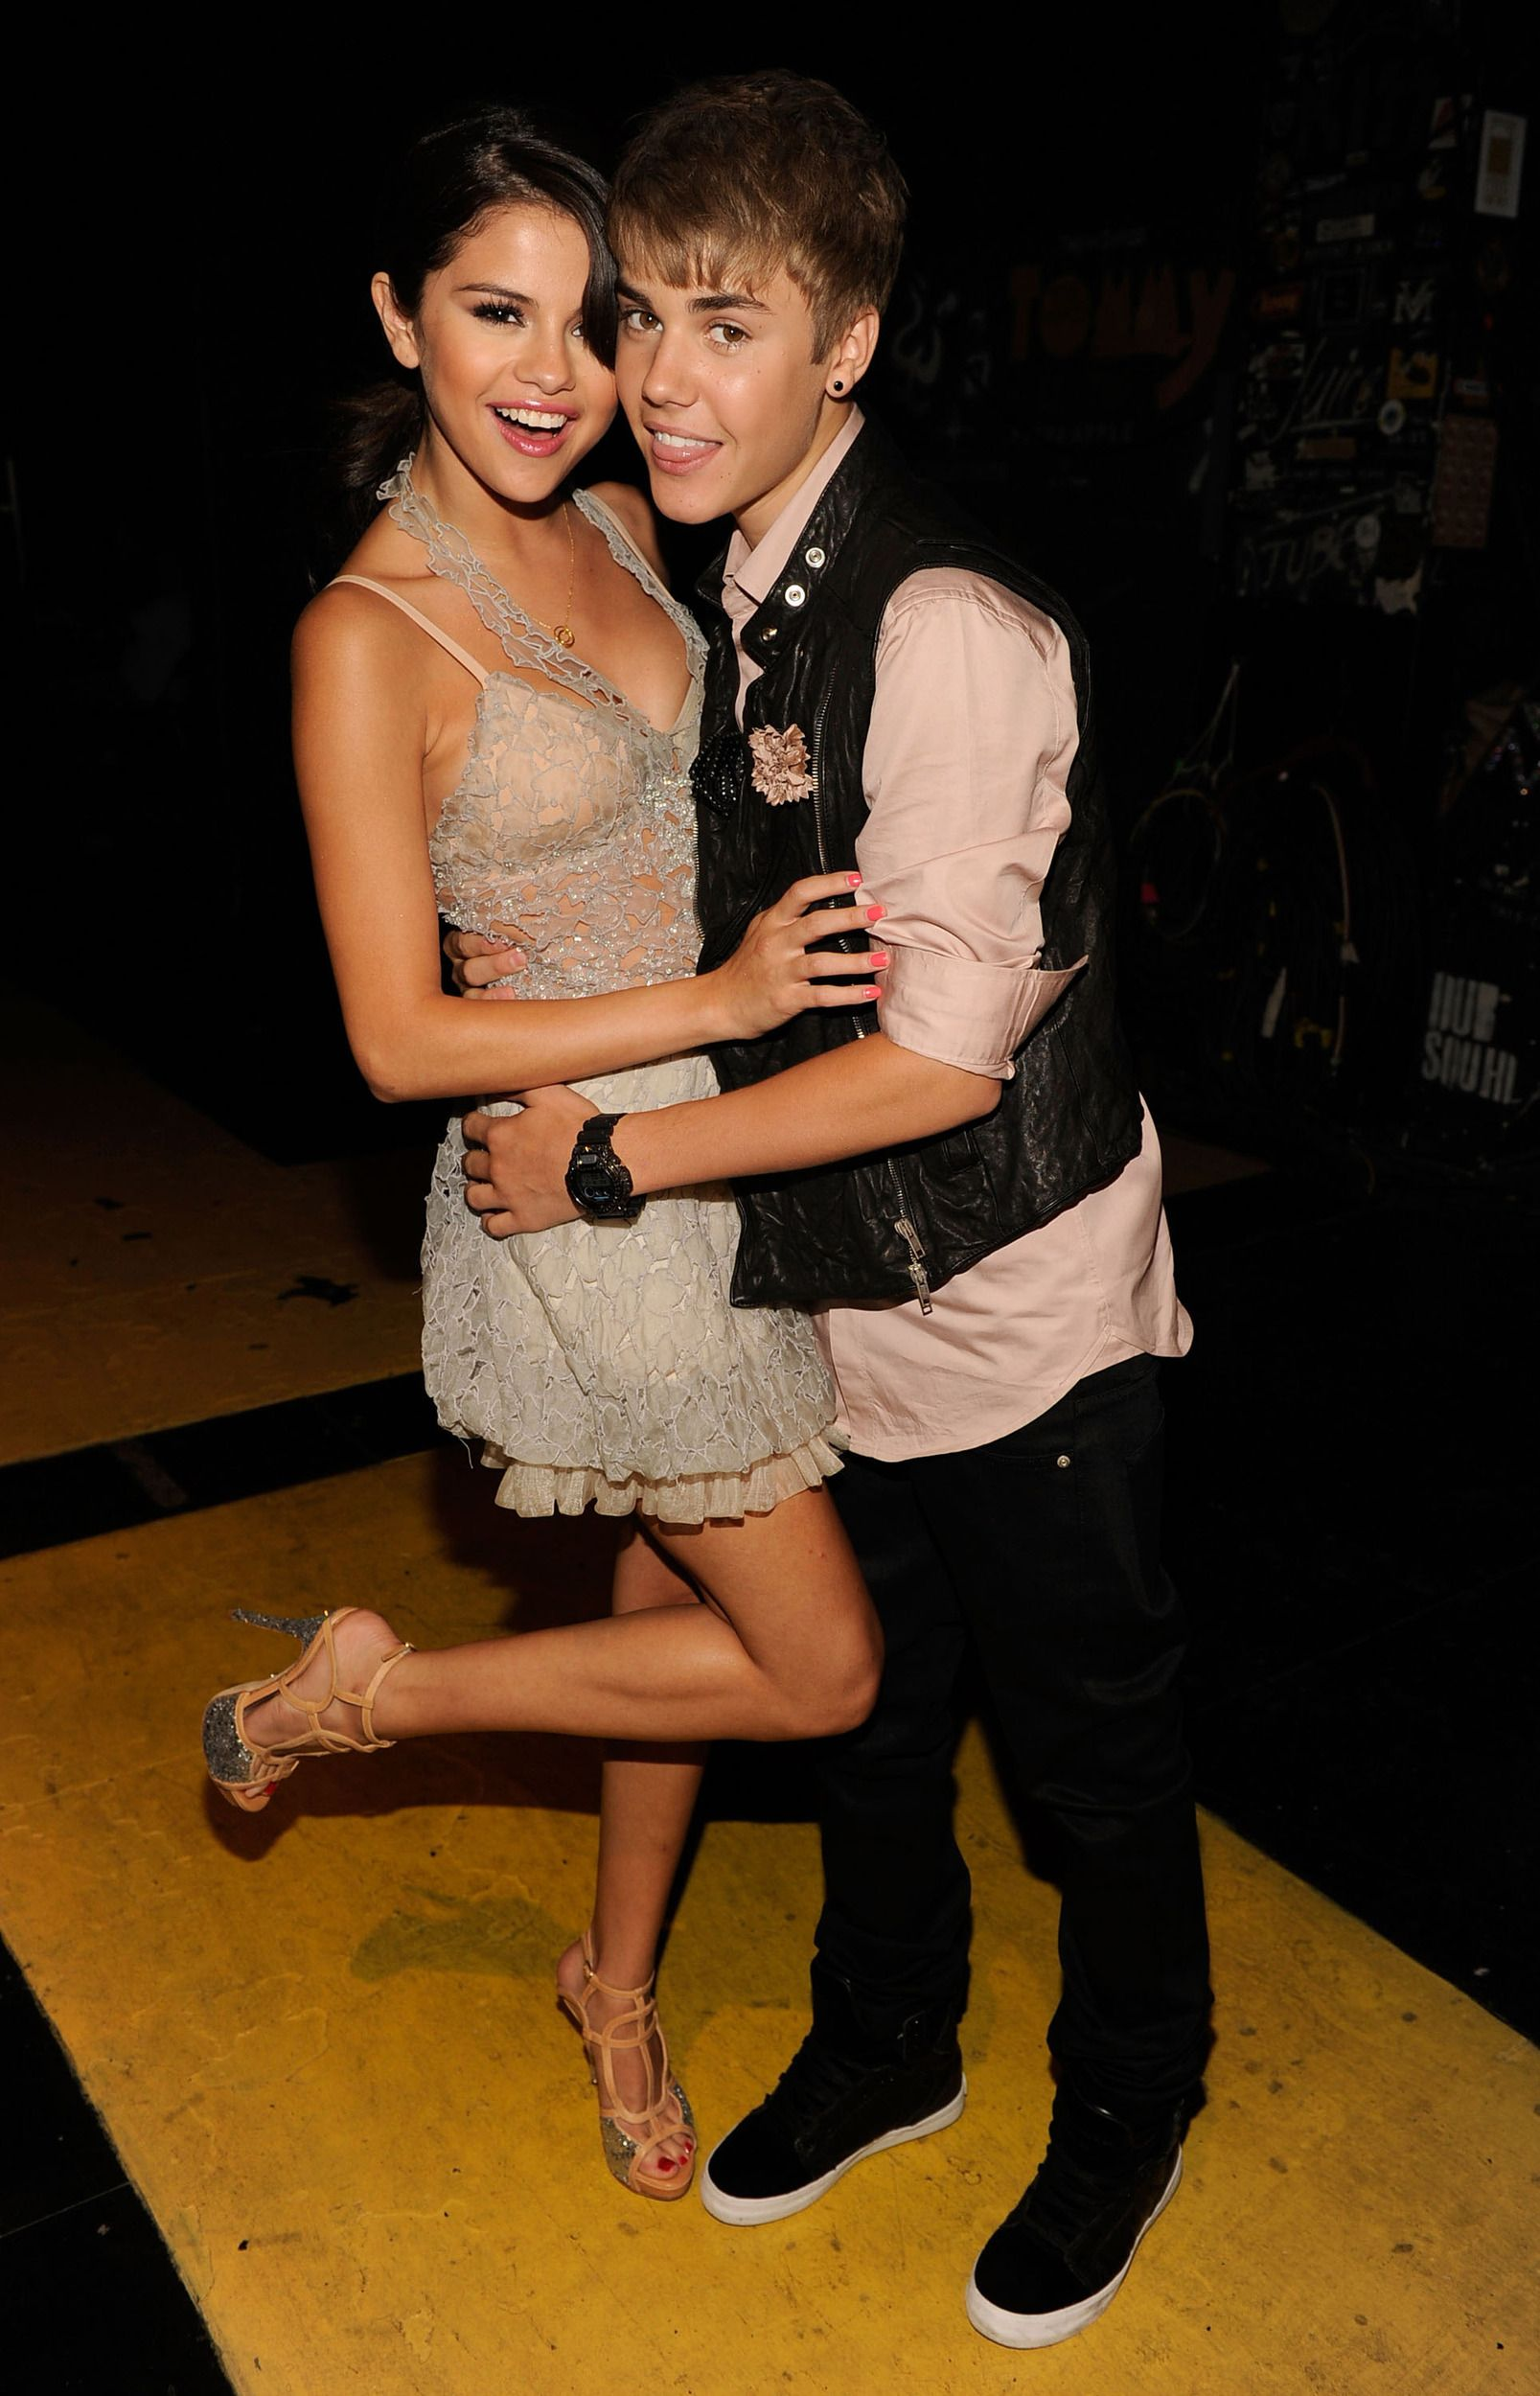 Justin Bieber And Selena Gomez Wallpapers For Android Bozhuwallpaper Justin Bieber And Selena Justin Bieber Selena Gomez Bieber Selena